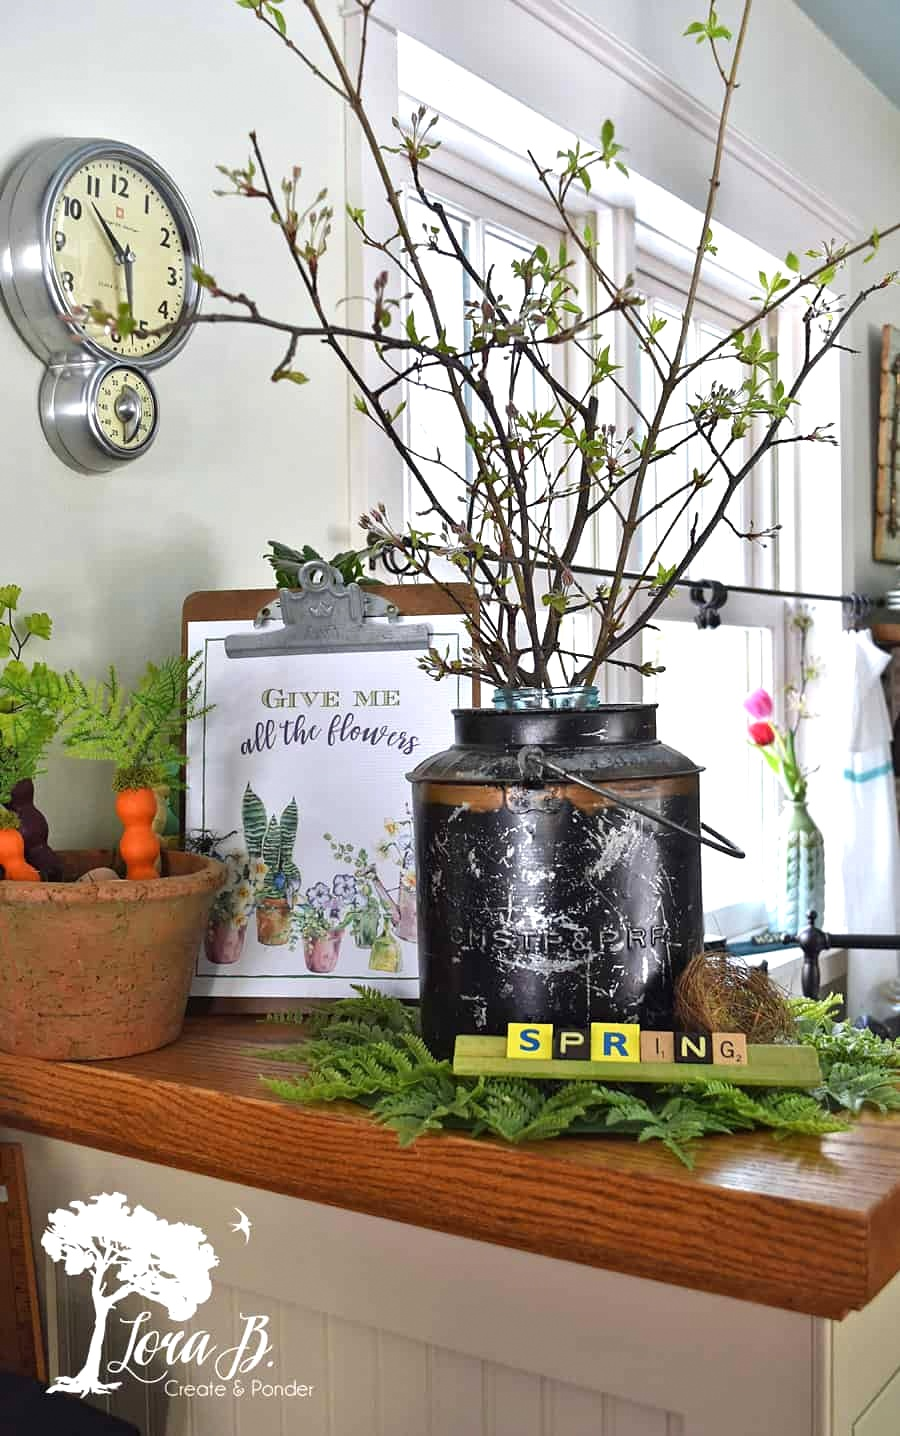 Vintage farmhouse spring decorating by Lora B, featured on DIY Salvaged Junk Projects 513 on Funky Junk!